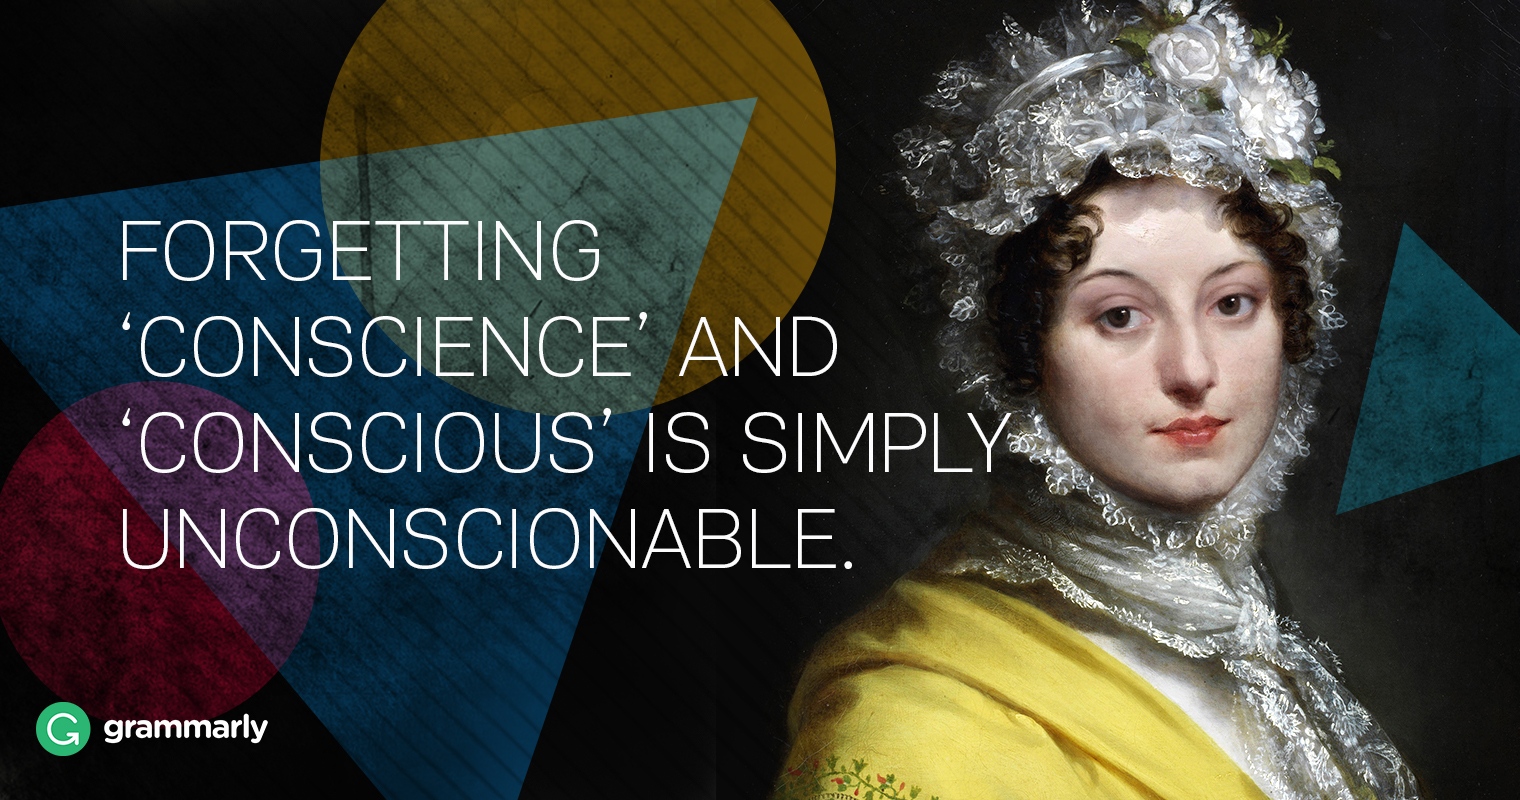 Make Up Your Mind, English! Conscious vs. Conscience and Unconscious vs. Unconscionable